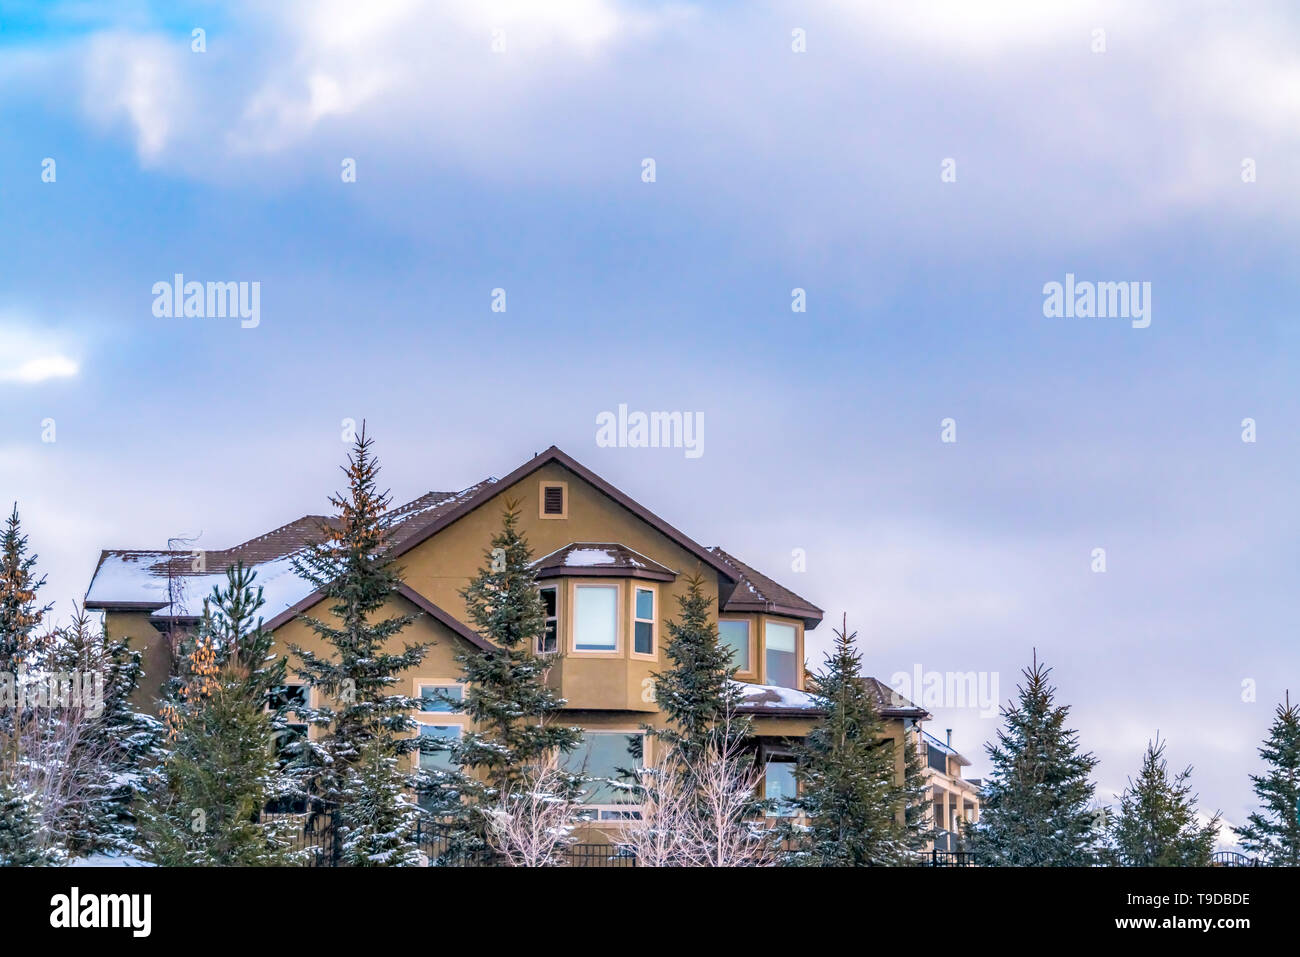 Exterior of an elegant house against blue sky with puffy clouds in winter - Stock Image